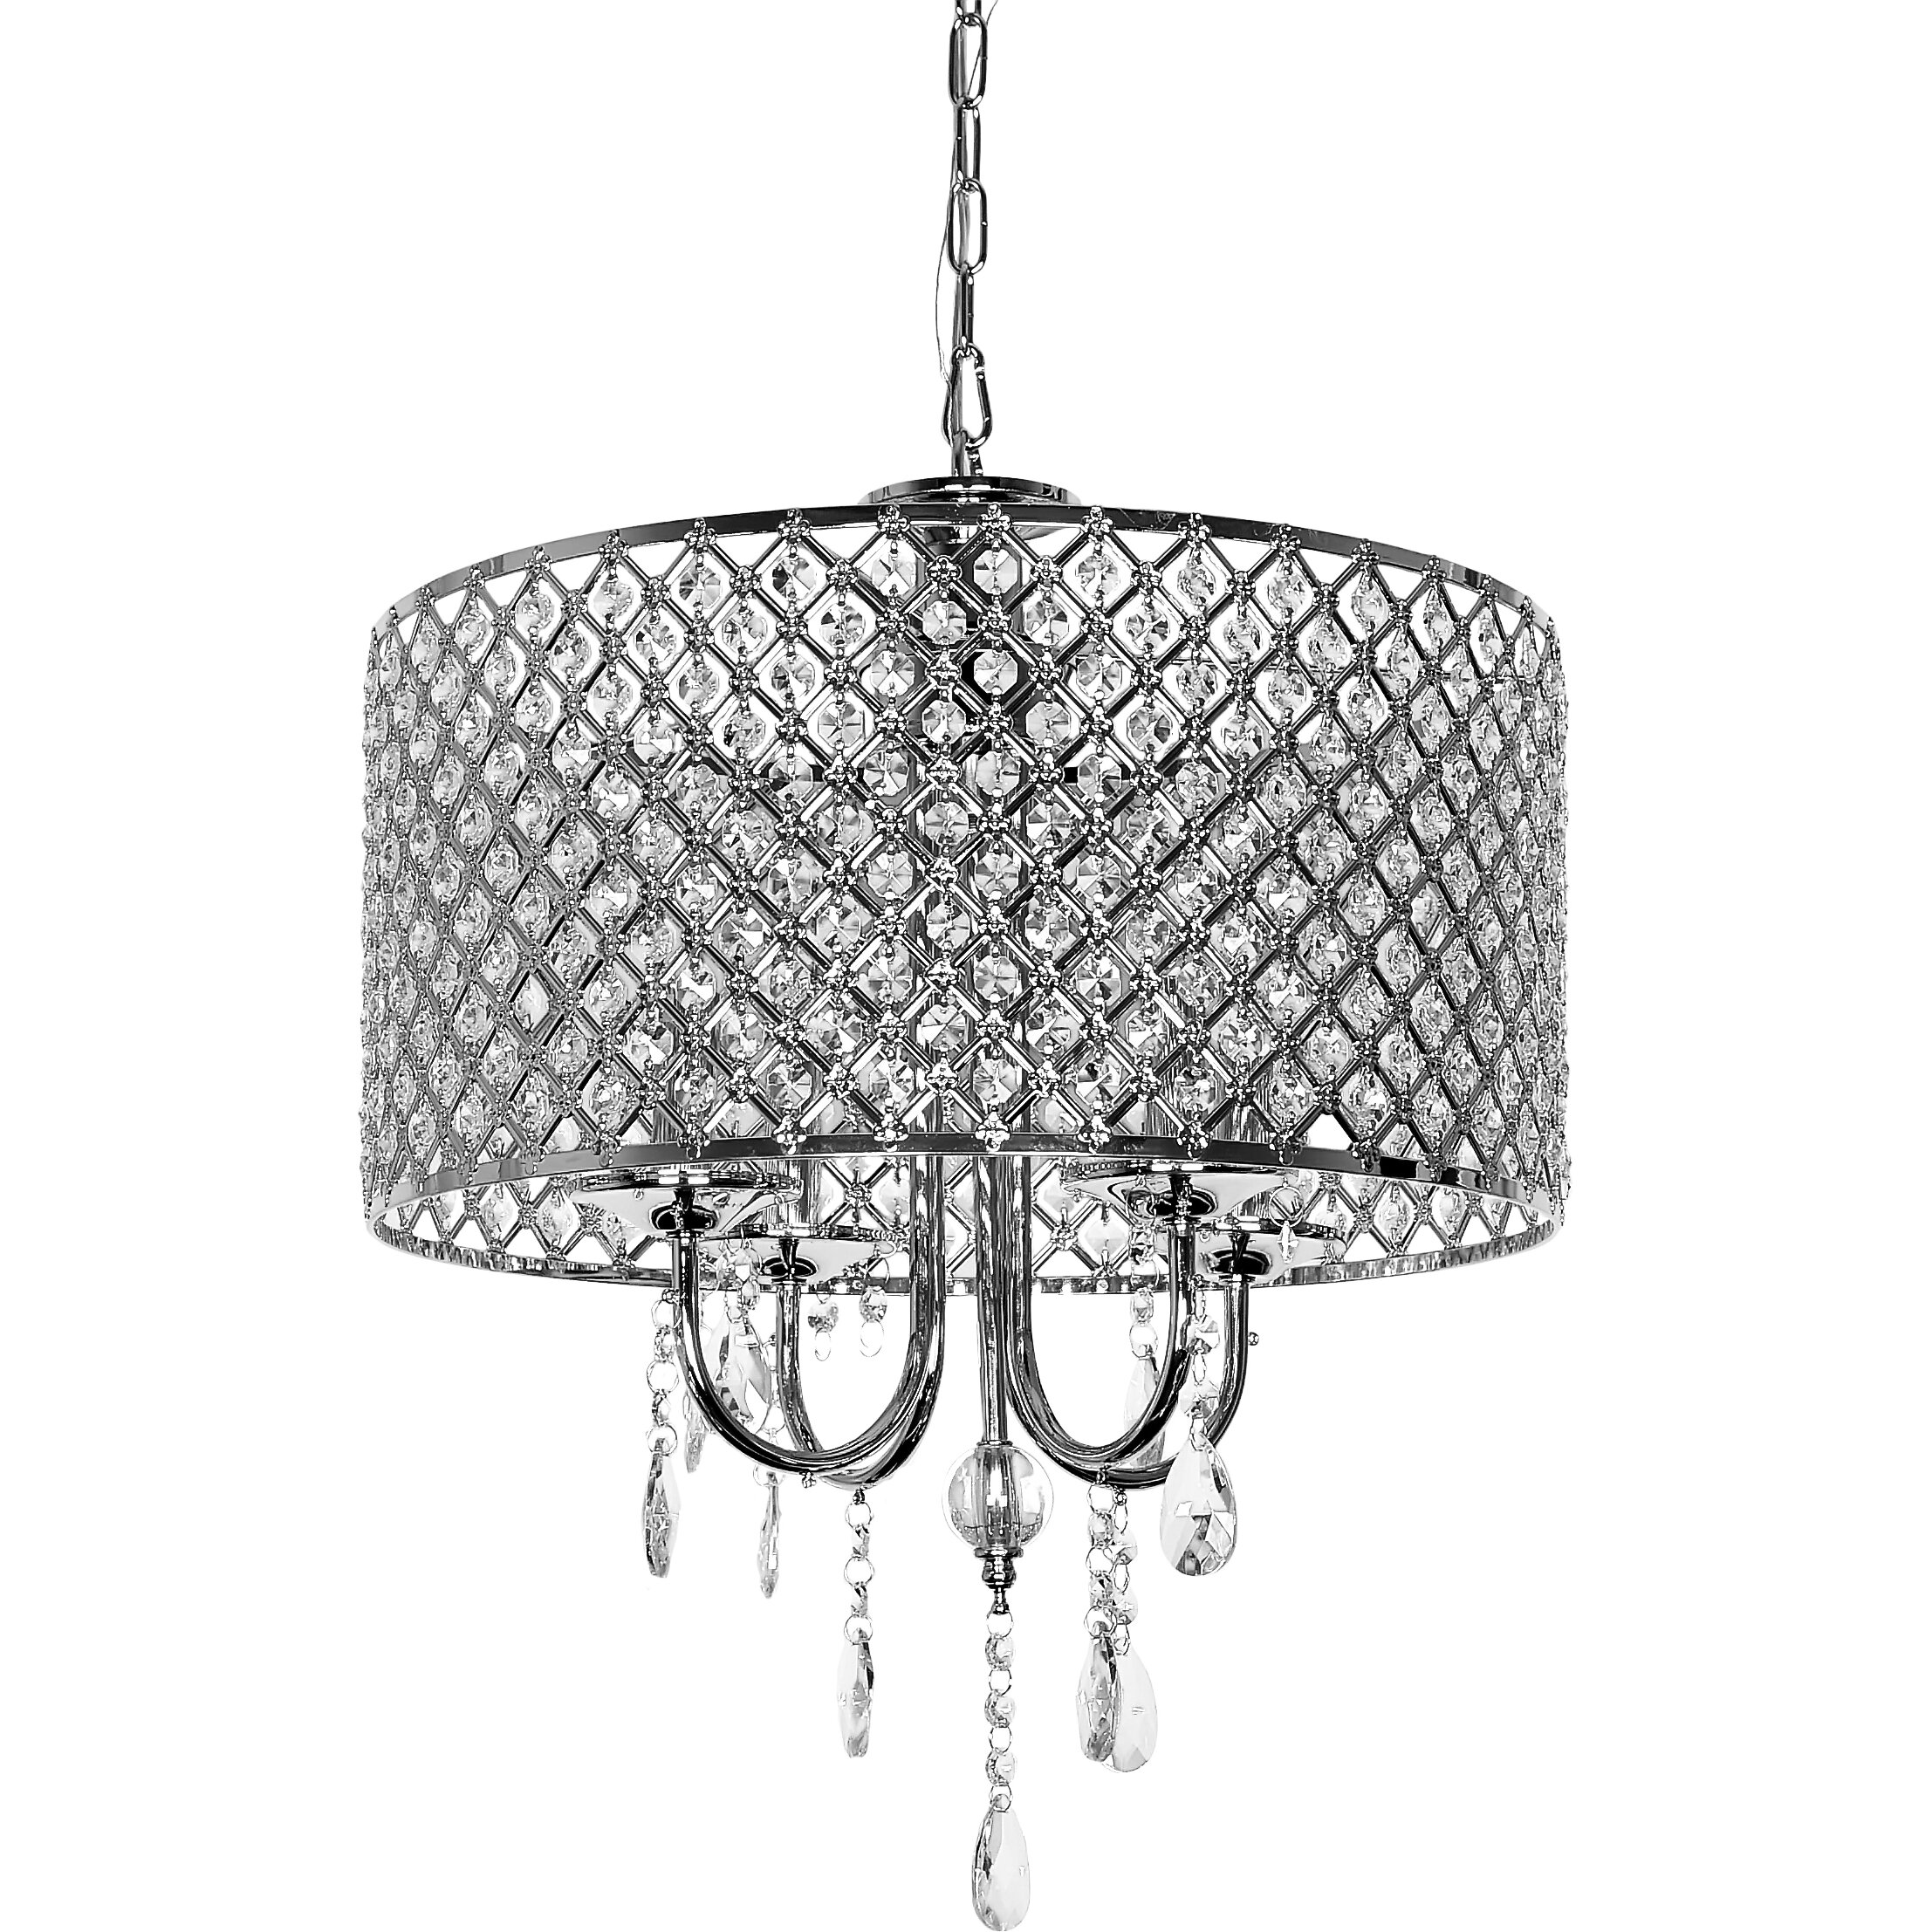 wellyer inc diana 4 light drum chandelier chandeliers pendants wayfair drum lighting